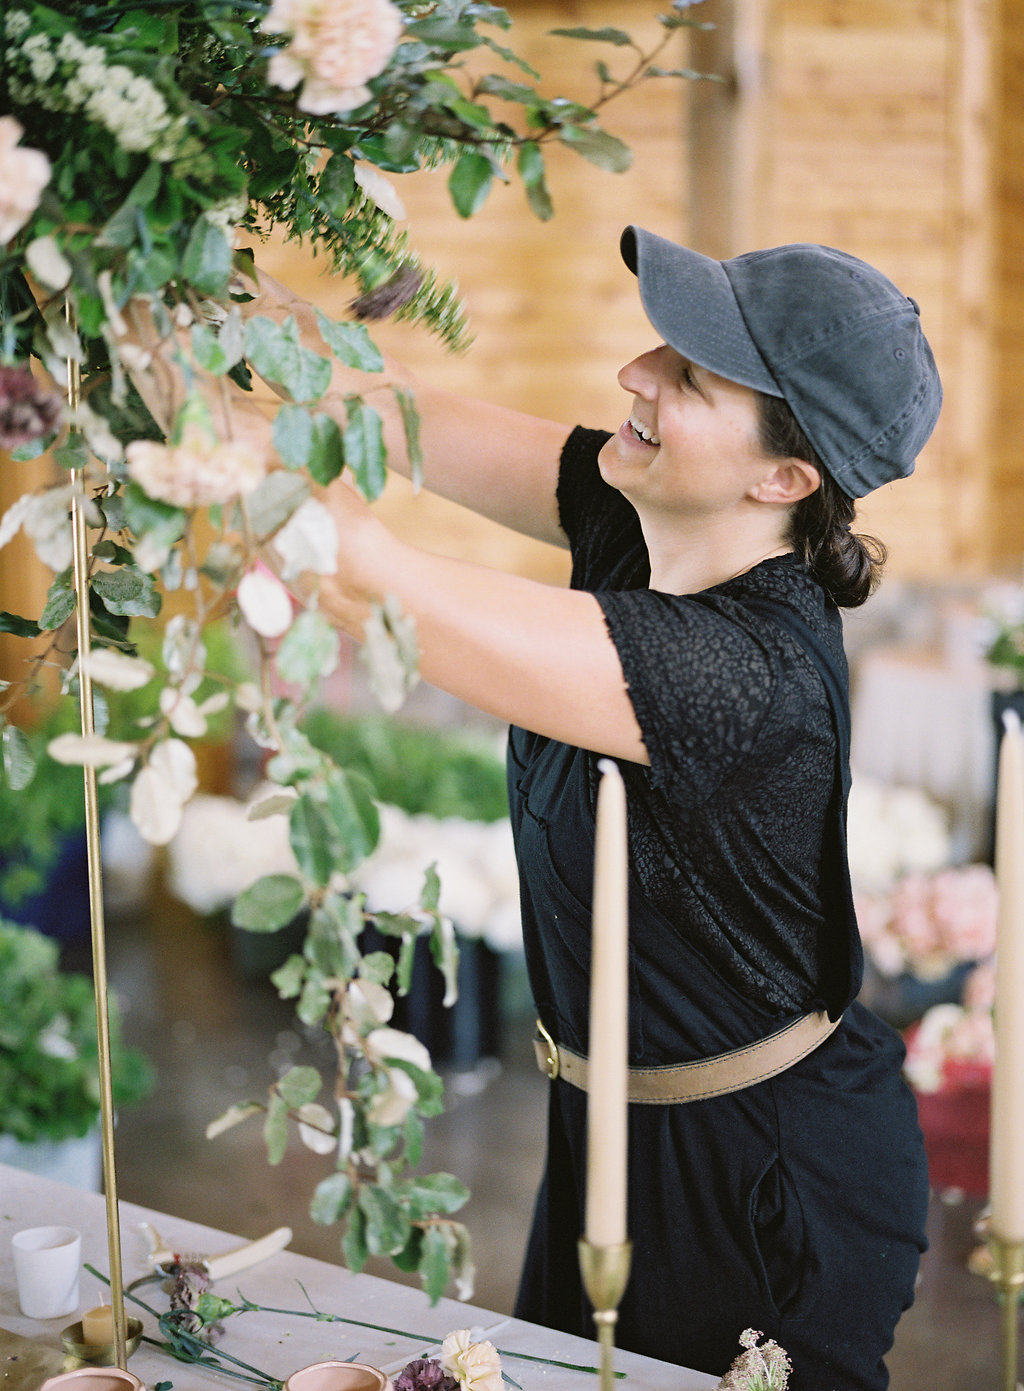 about - Not long ago, I was a lot like you: running on a hamster wheel, desperately trying to make a decent living with my floral design business–with literally nothing to show for it.